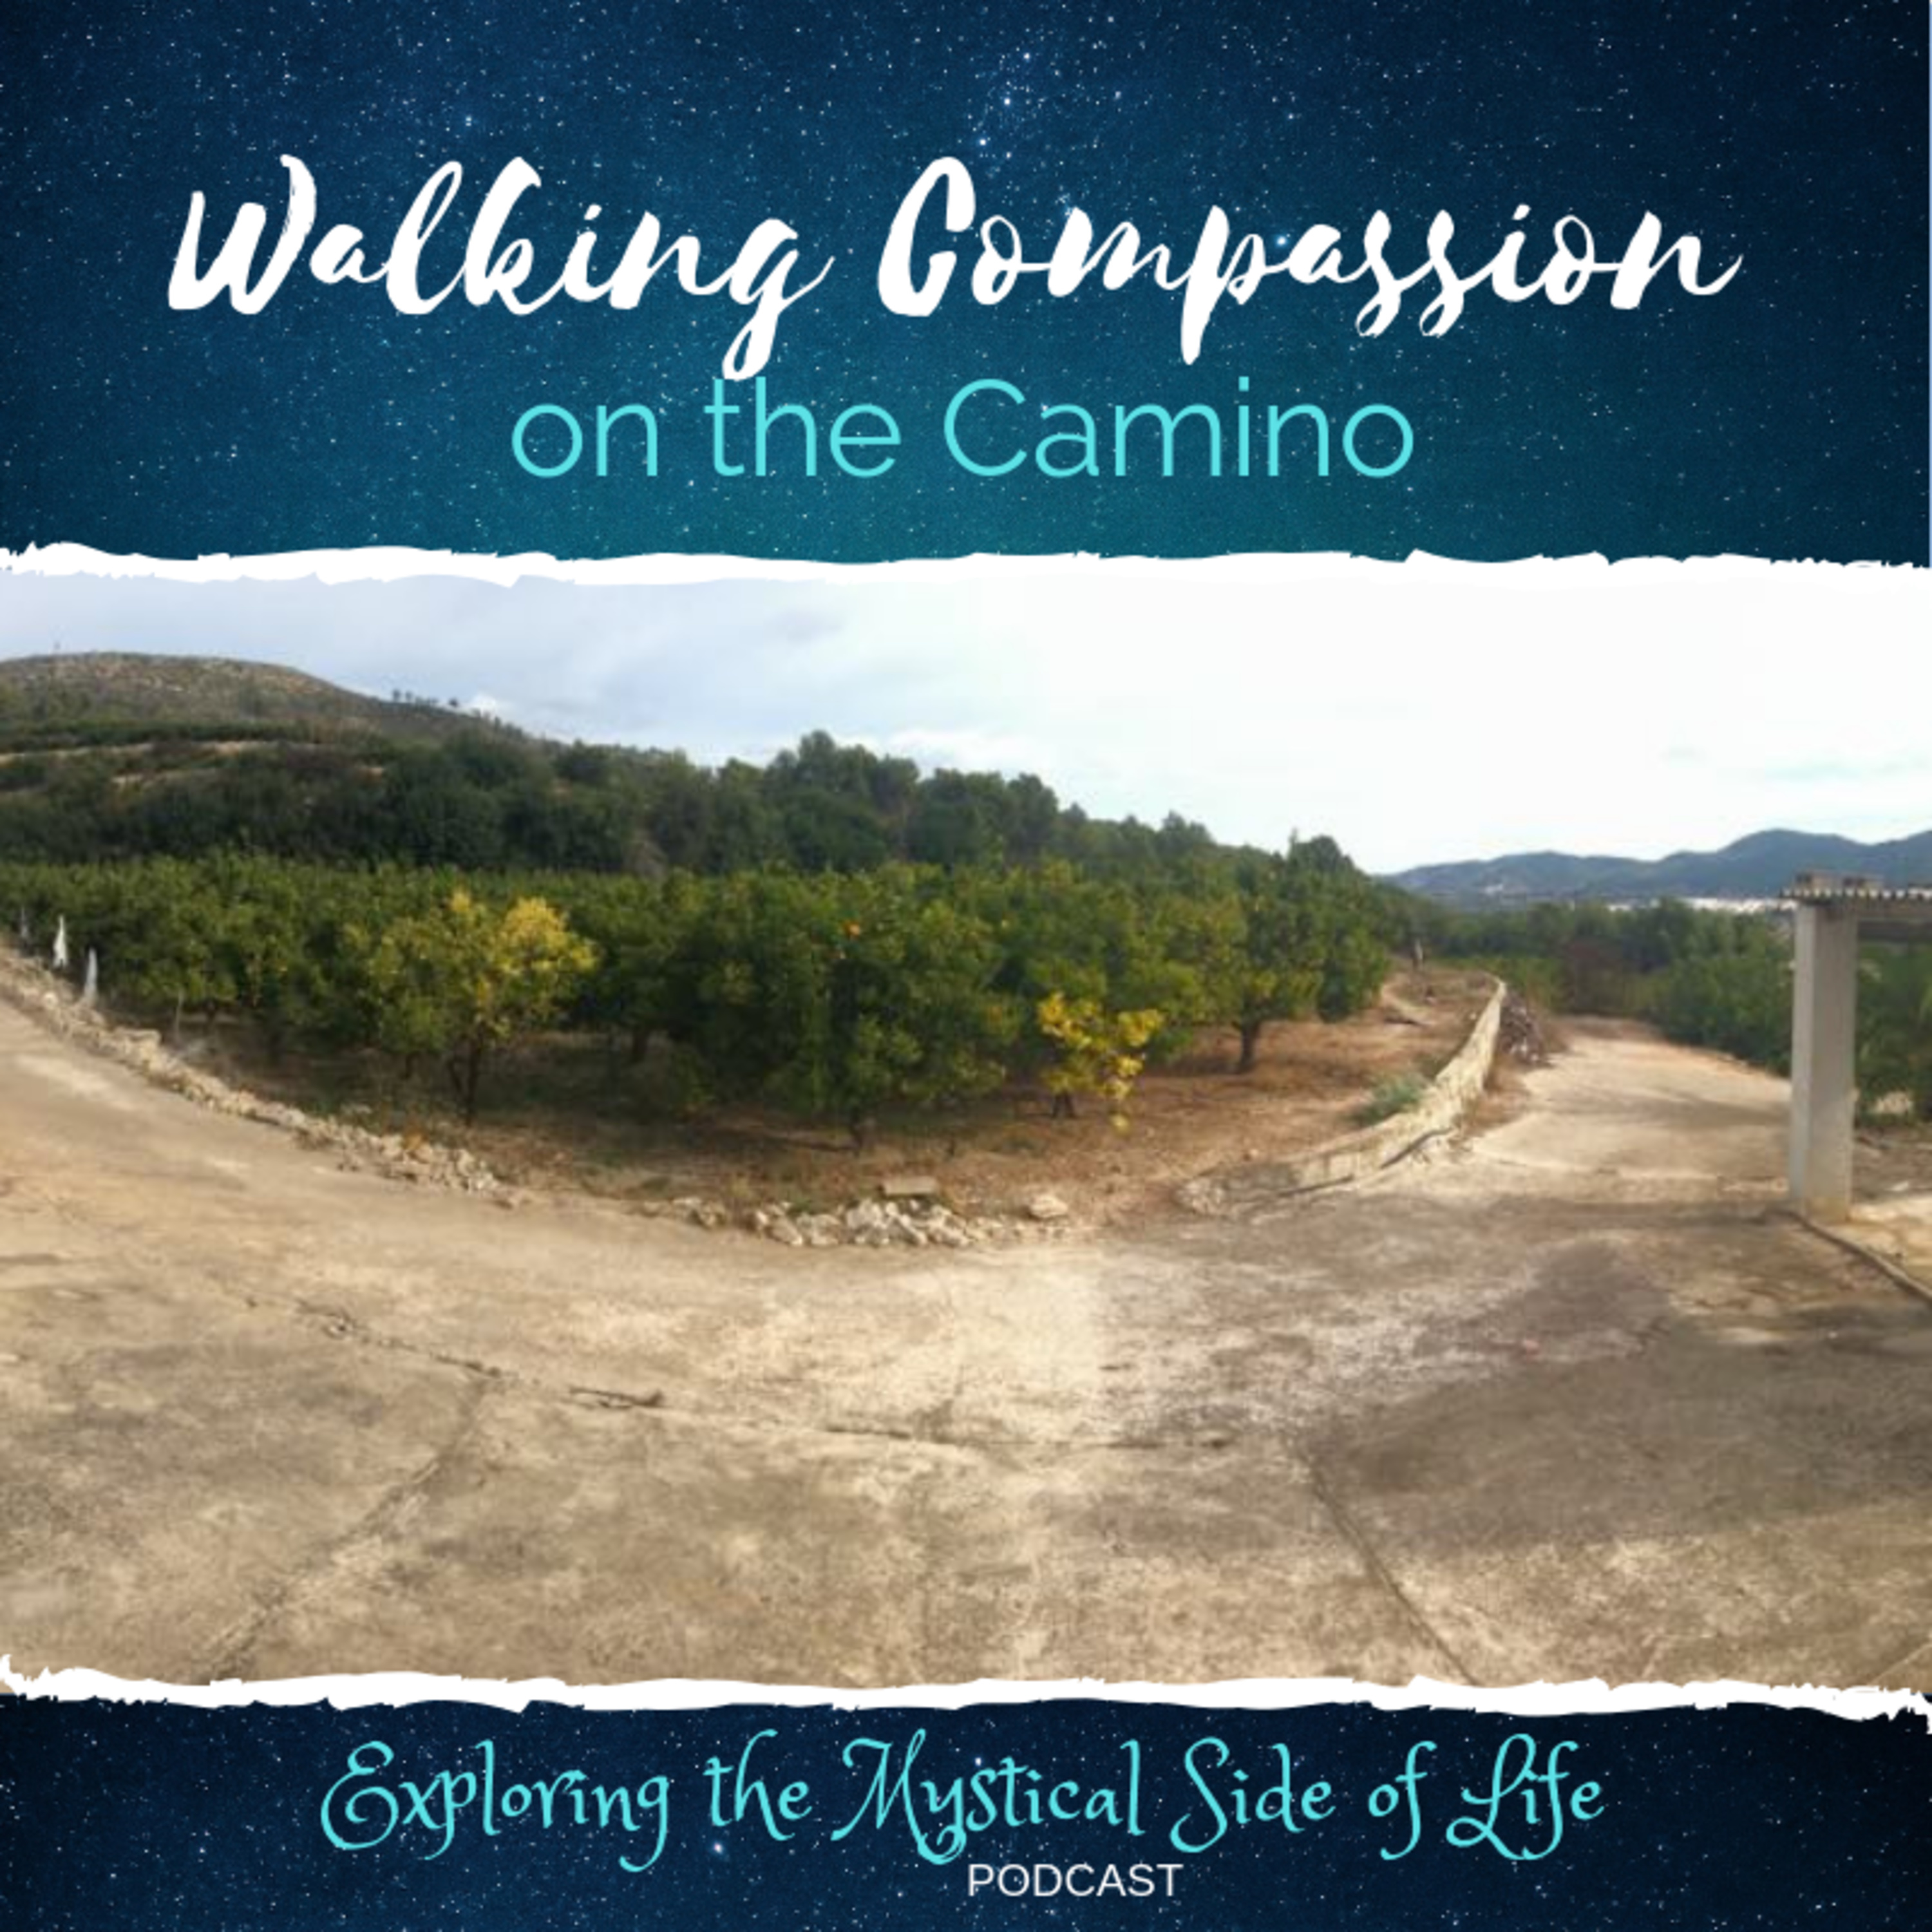 Walking Compassion on the Camino